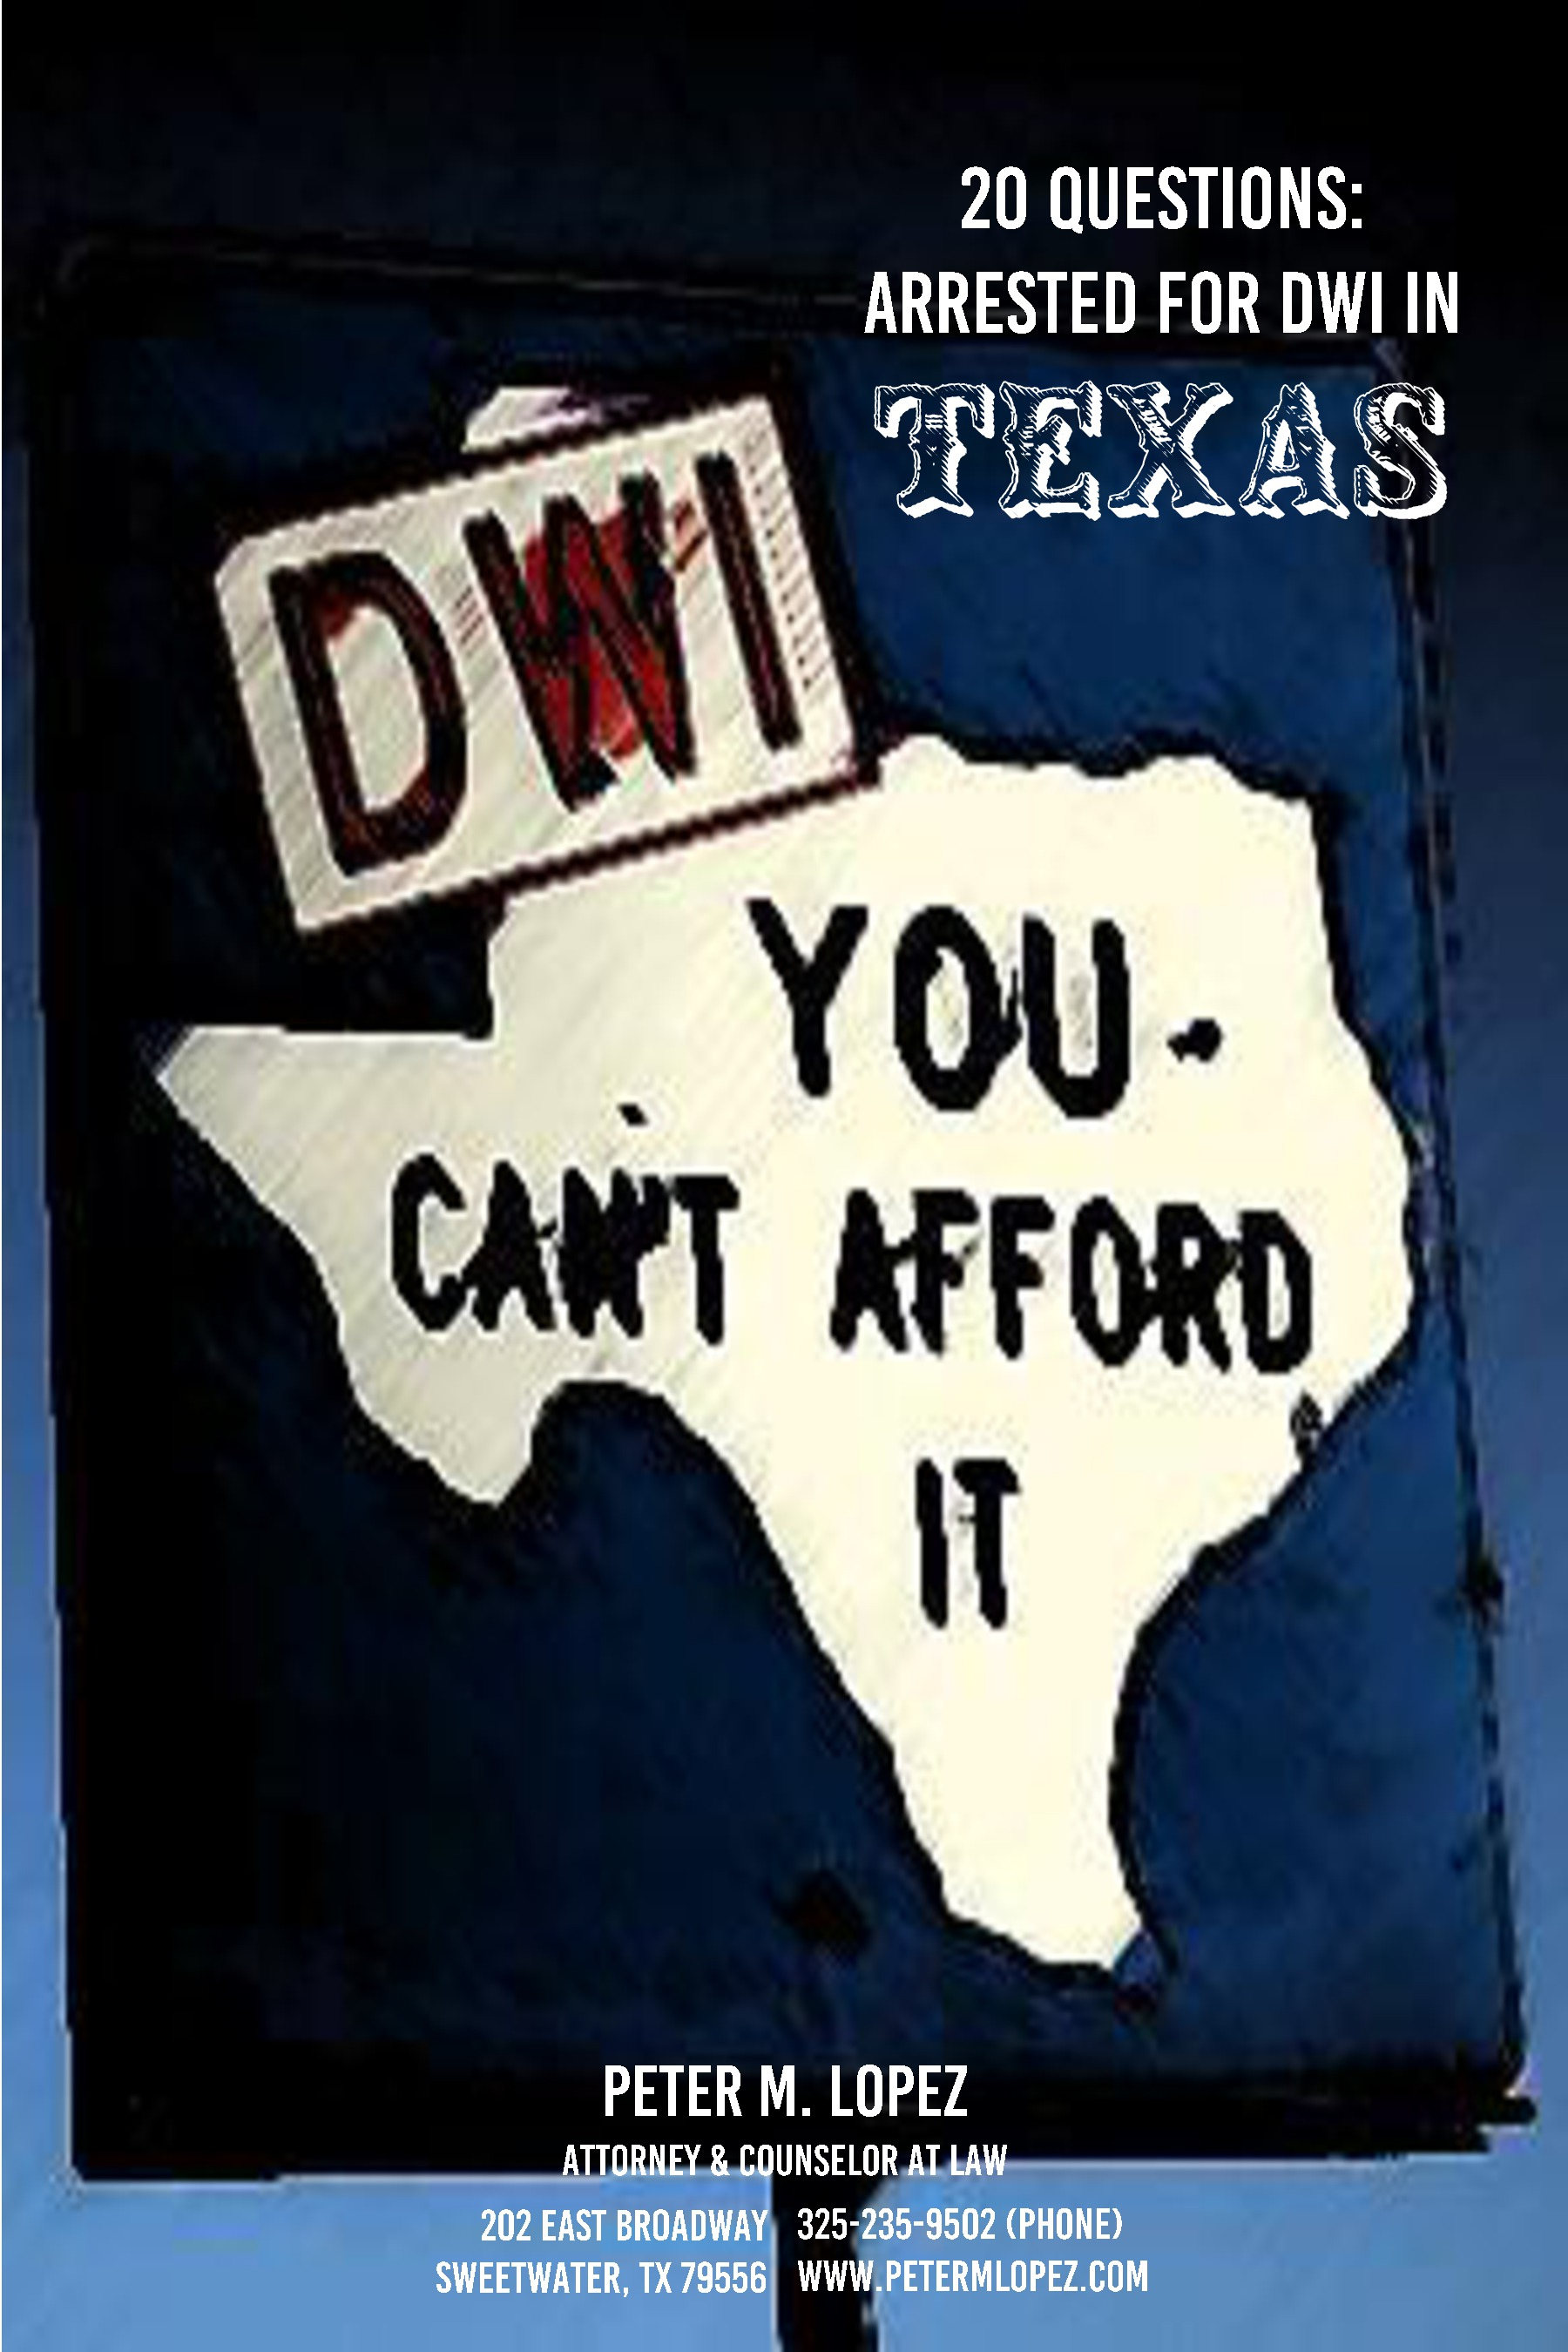 Download my new book   20 Questions: Arrested for DWI in Texas  , and get answers to frequently asked questions about a Texas DWI arrest.